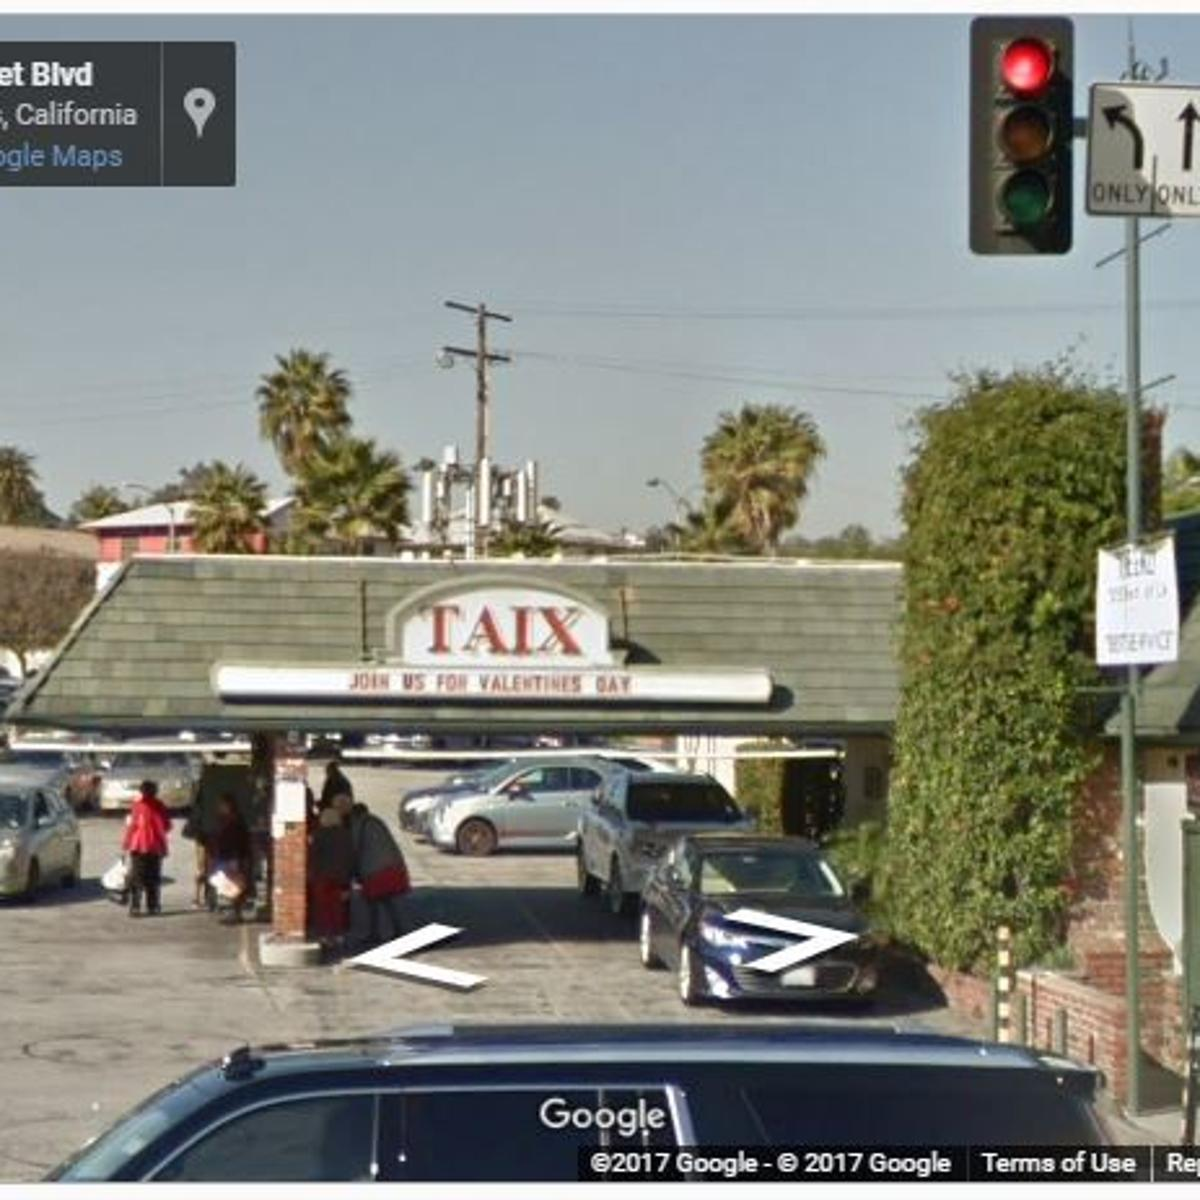 How do you pronounce the name of Echo Park's 'Taix